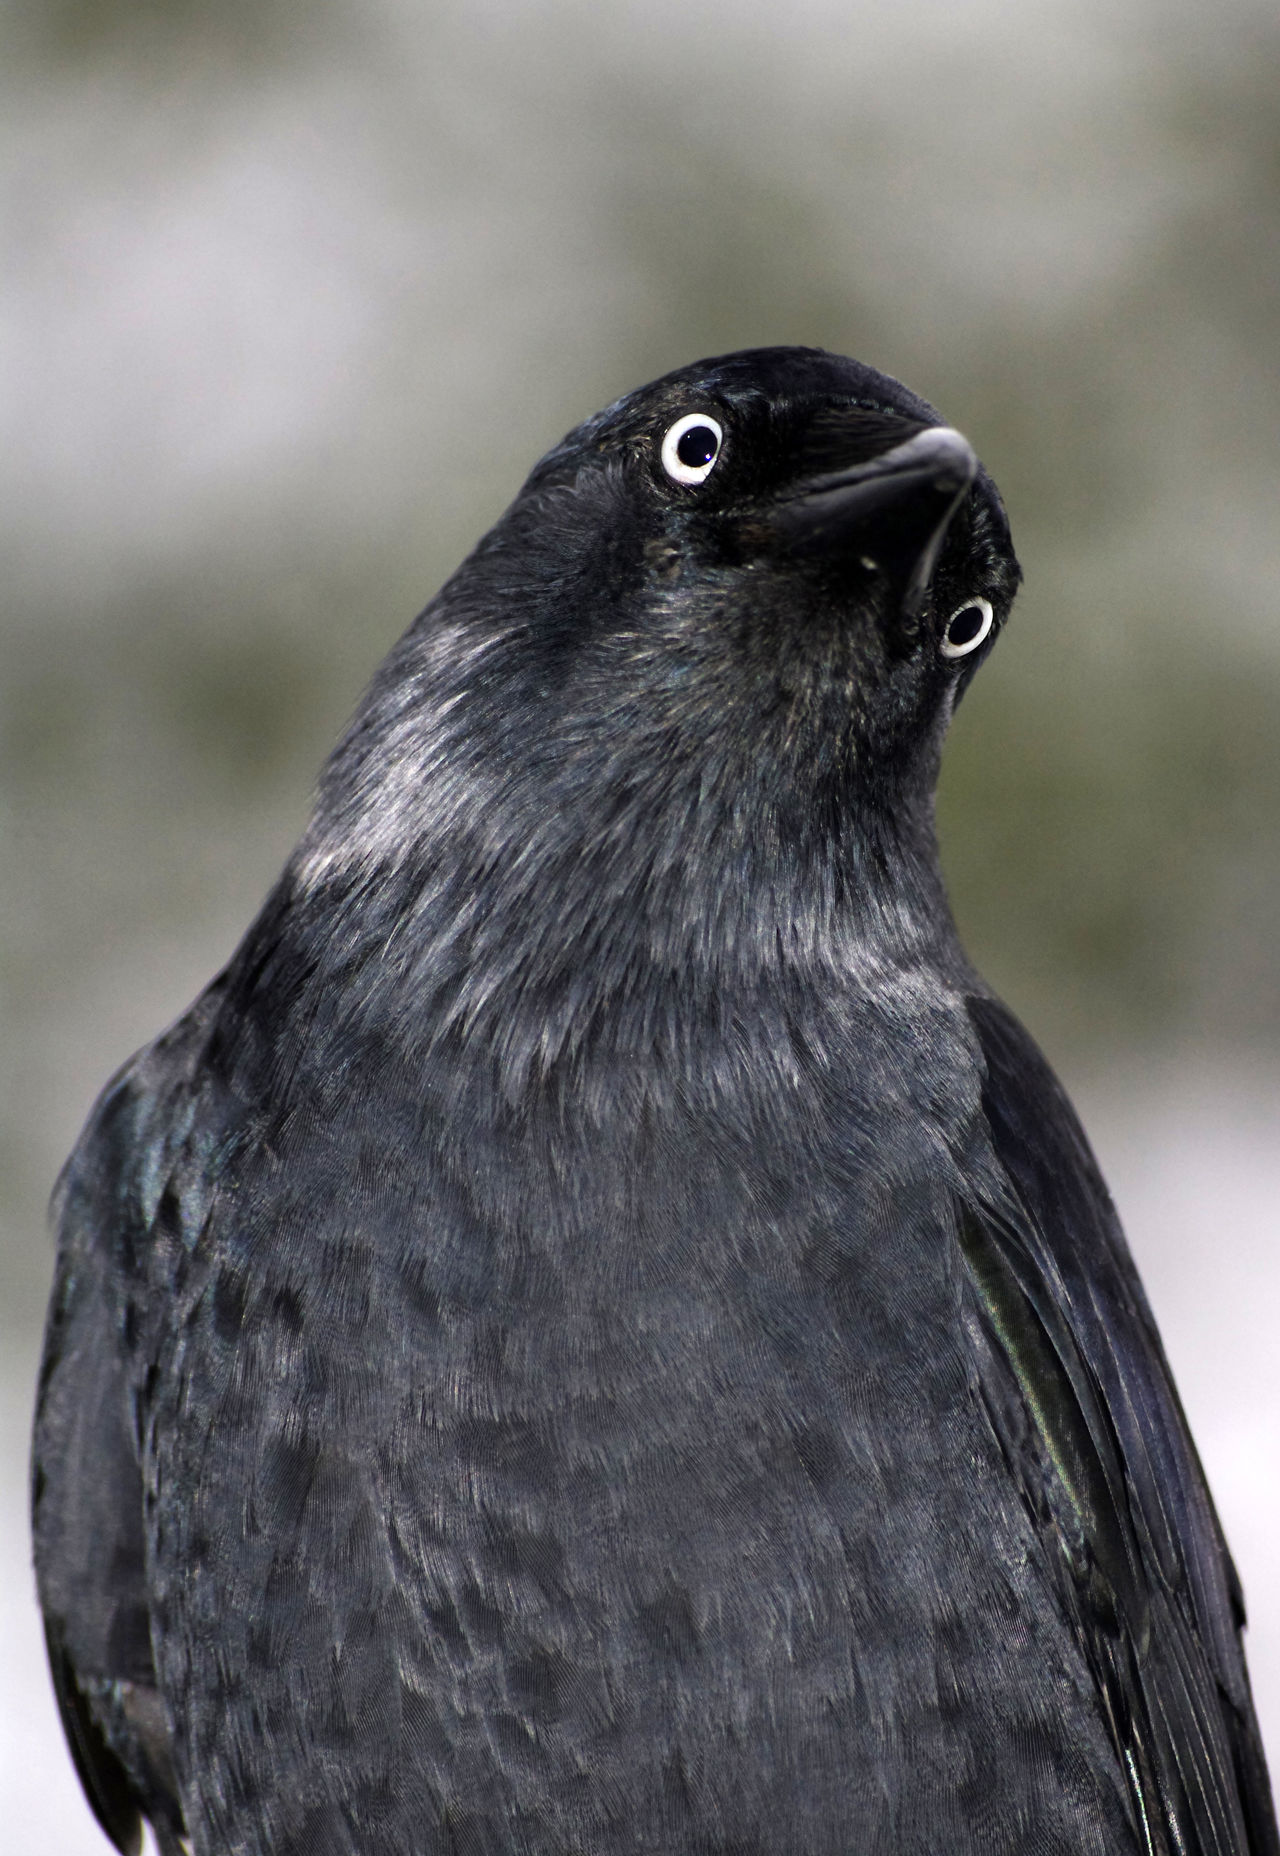 Animal Head  Animal Themes Animals In The Wild Beak Beauty In Nature Bird Close-up Coloeus Monedula Day Focus On Foreground Jackdaw Looking Away Nature No People One Animal Outdoors Perching Wildlife Zoology Natures Diversities The OO Mission Maximum Closeness